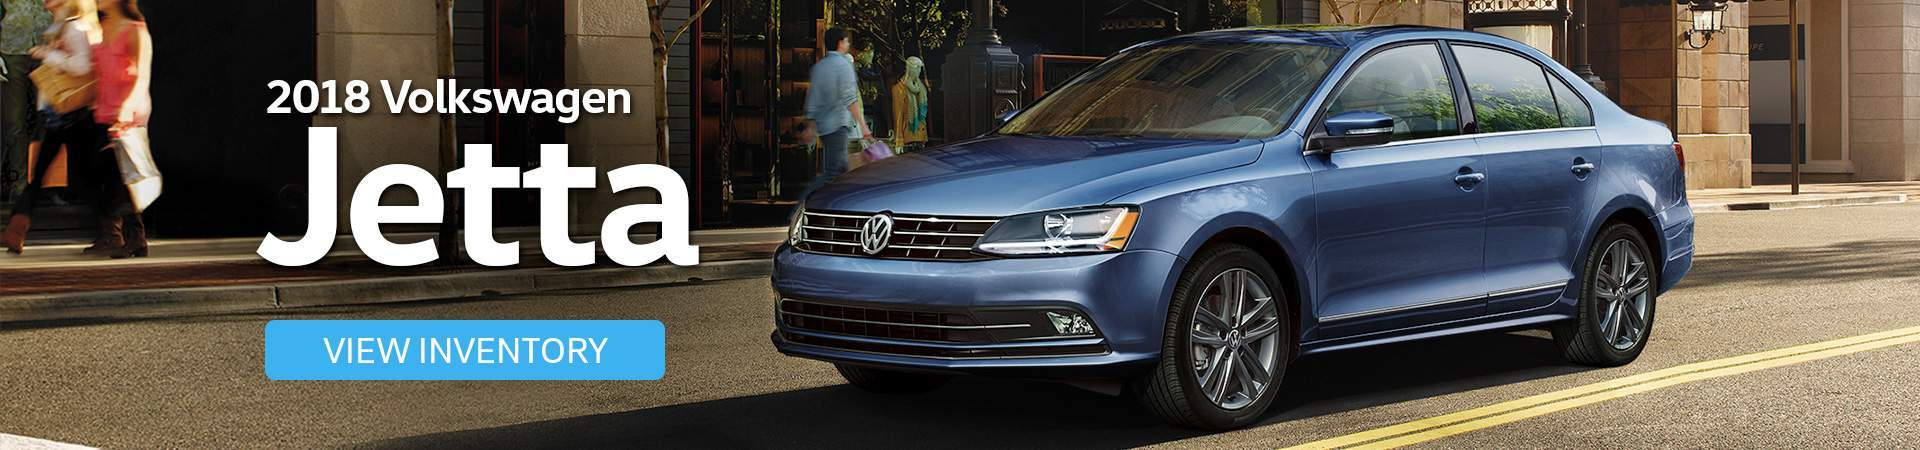 volkswagen dealership santa rosa ca used cars hansel volkswagen. Black Bedroom Furniture Sets. Home Design Ideas